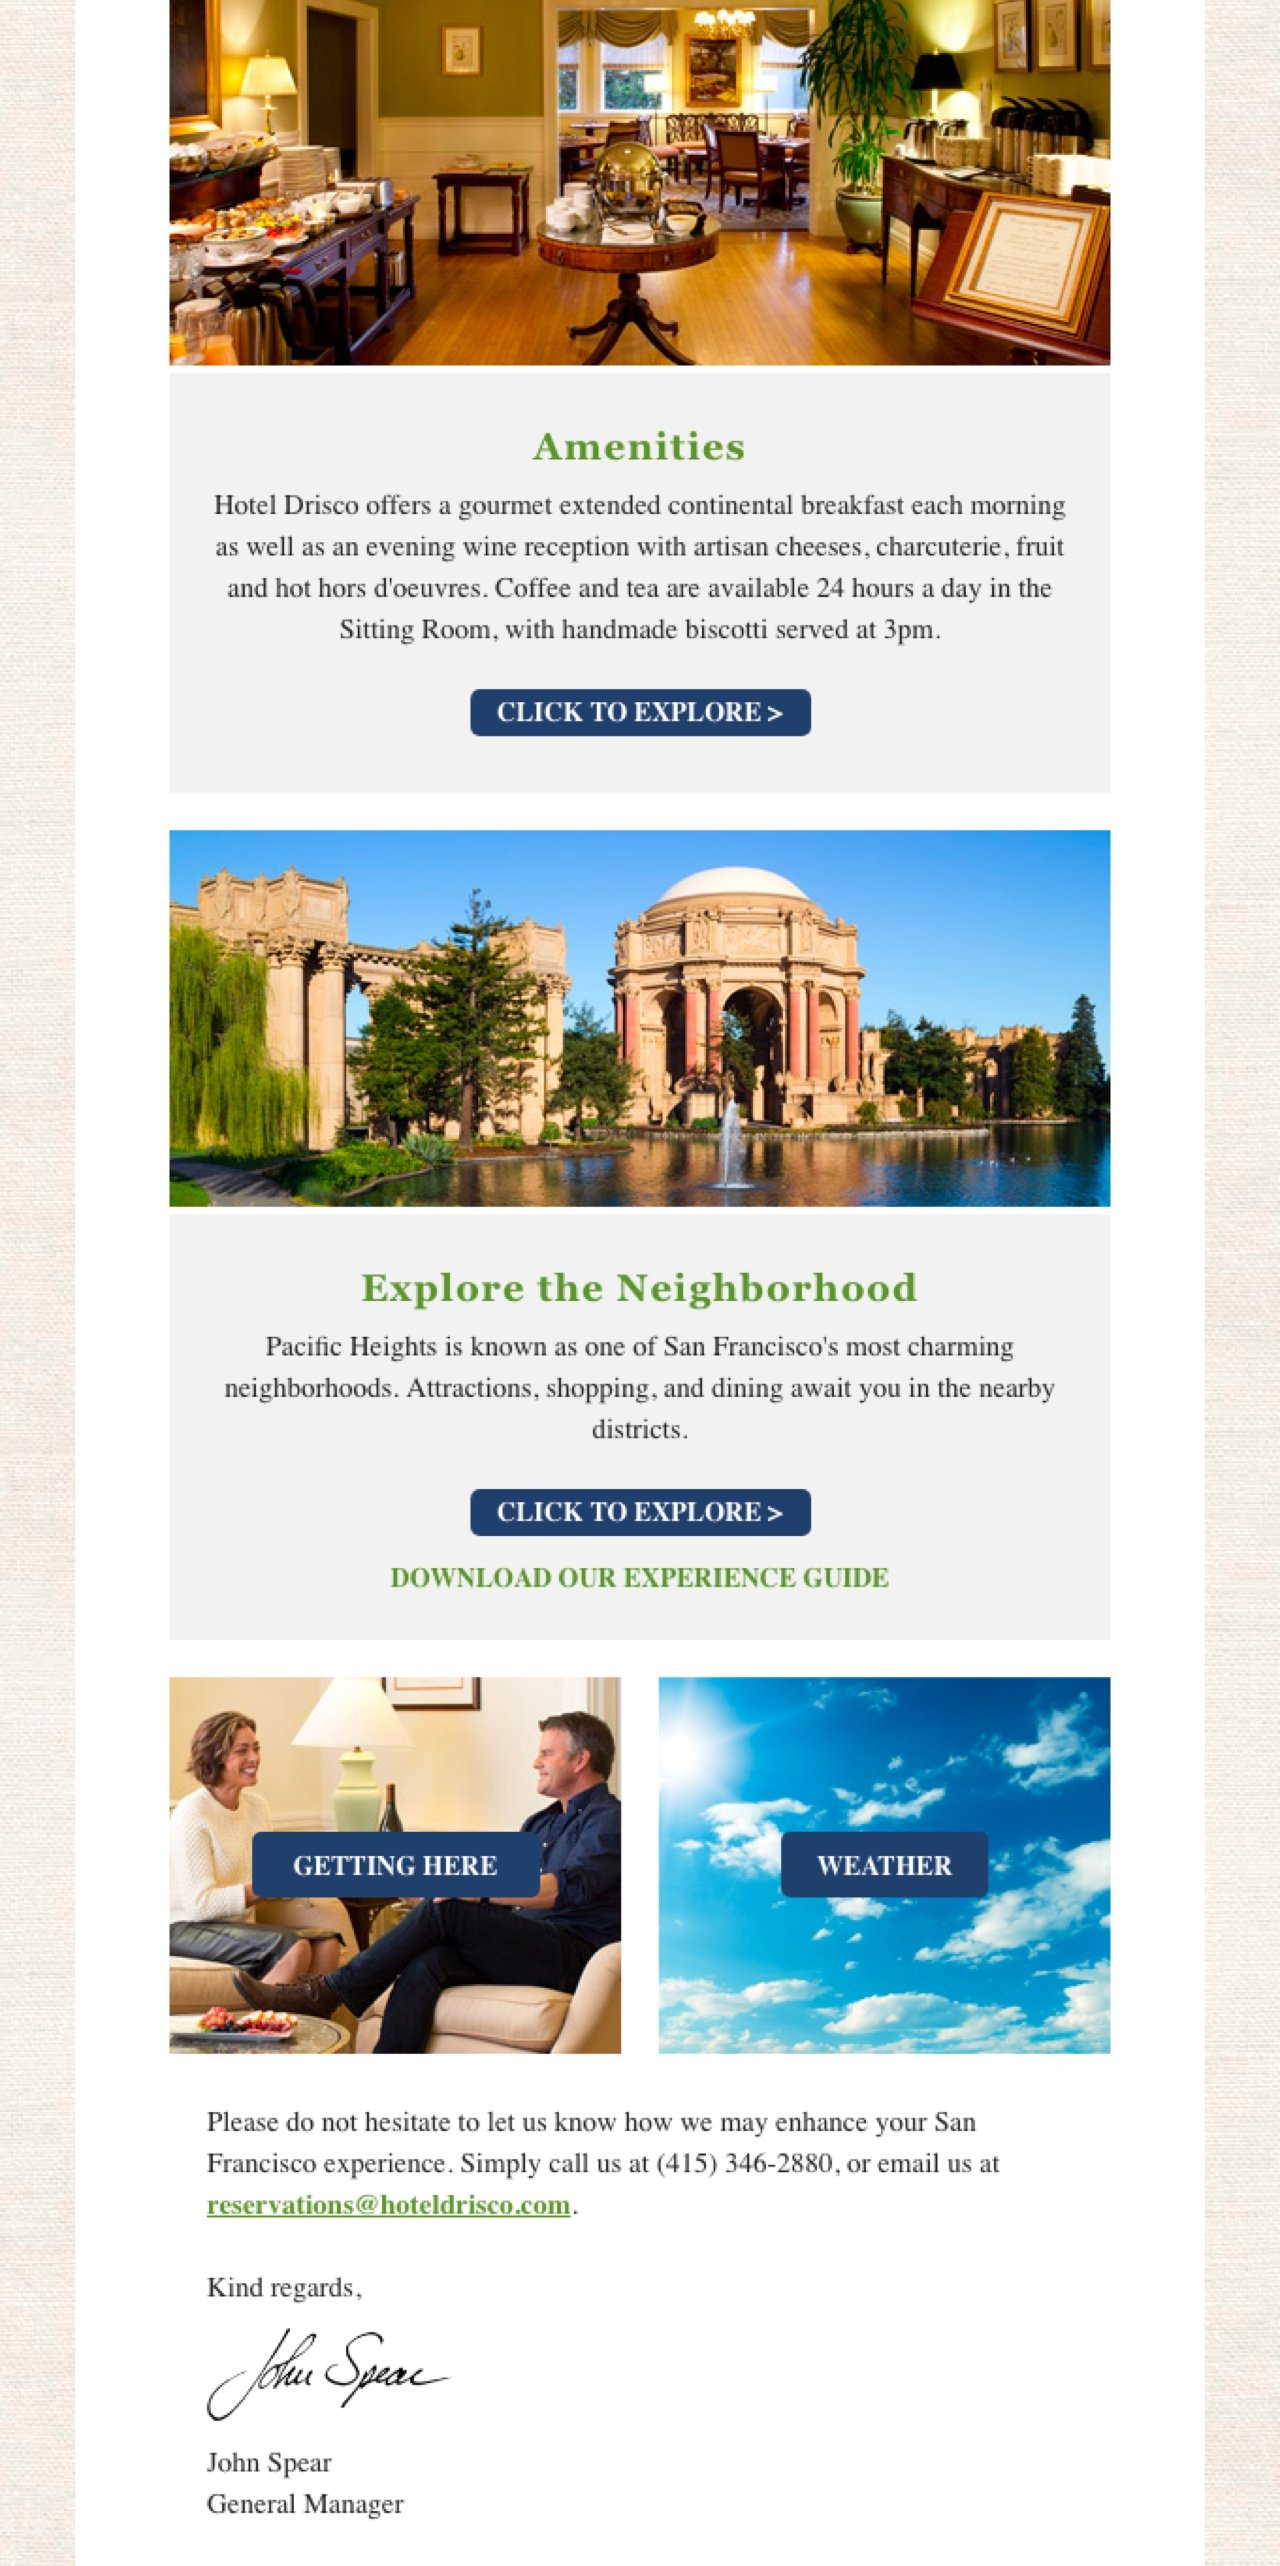 Hotel Drisco newsletter example